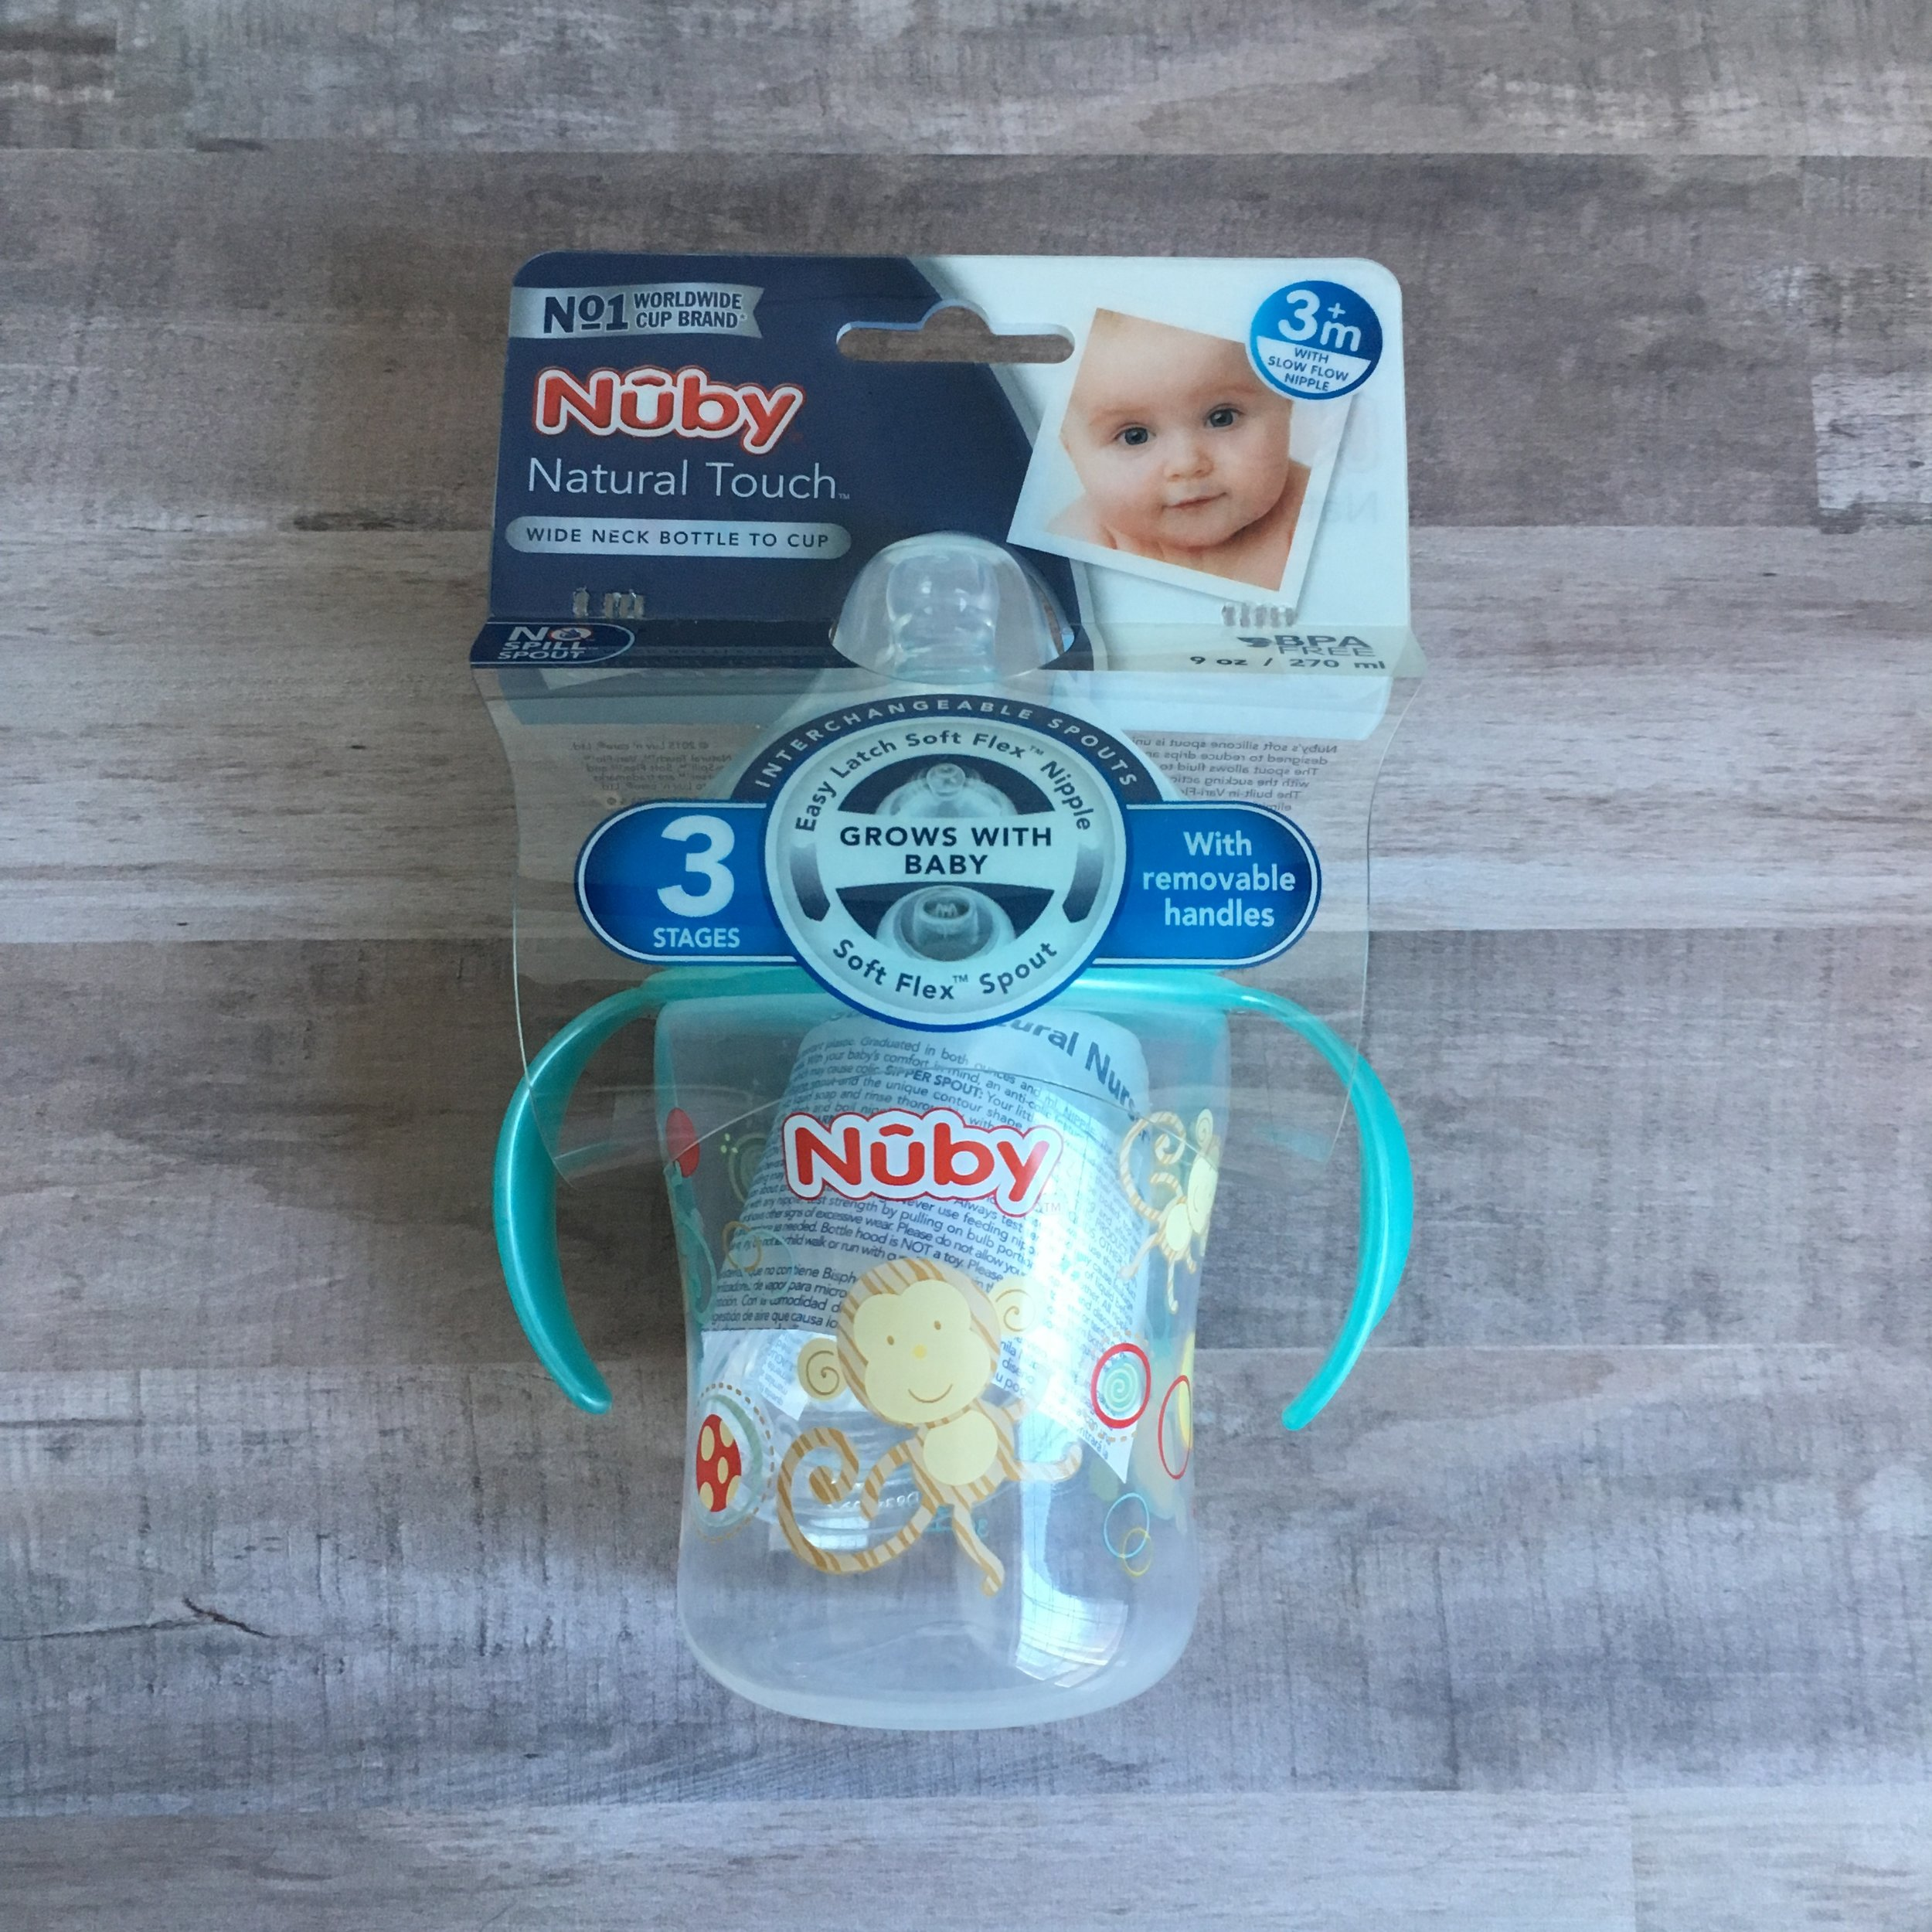 Affordable Baby Shower Gift Basket with Nuby - Convertible Bottle to Sippy Cup